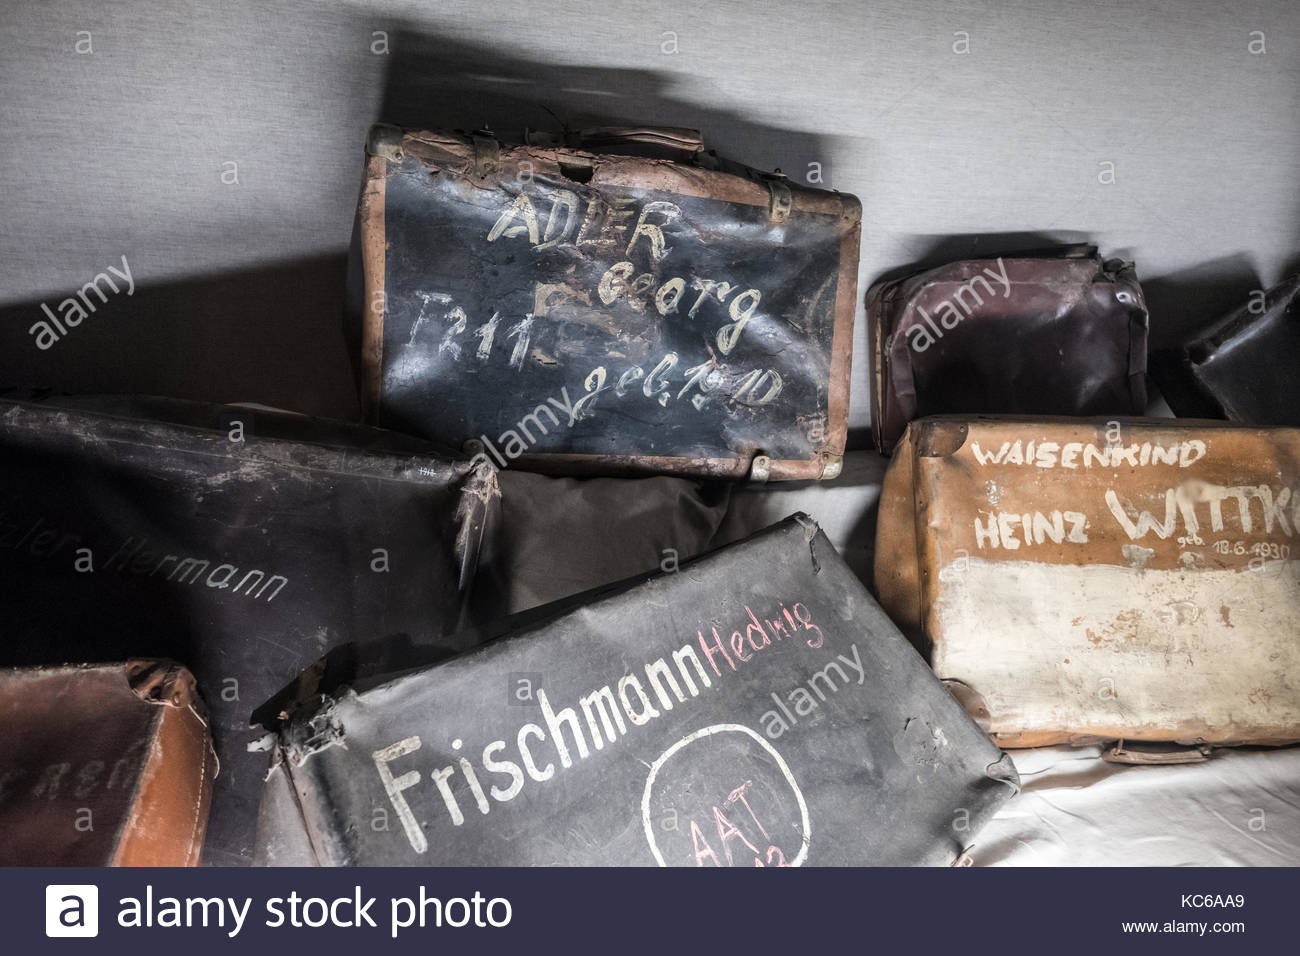 Luggage suitcase of the deported Jews in Auschwitz - Stock Image